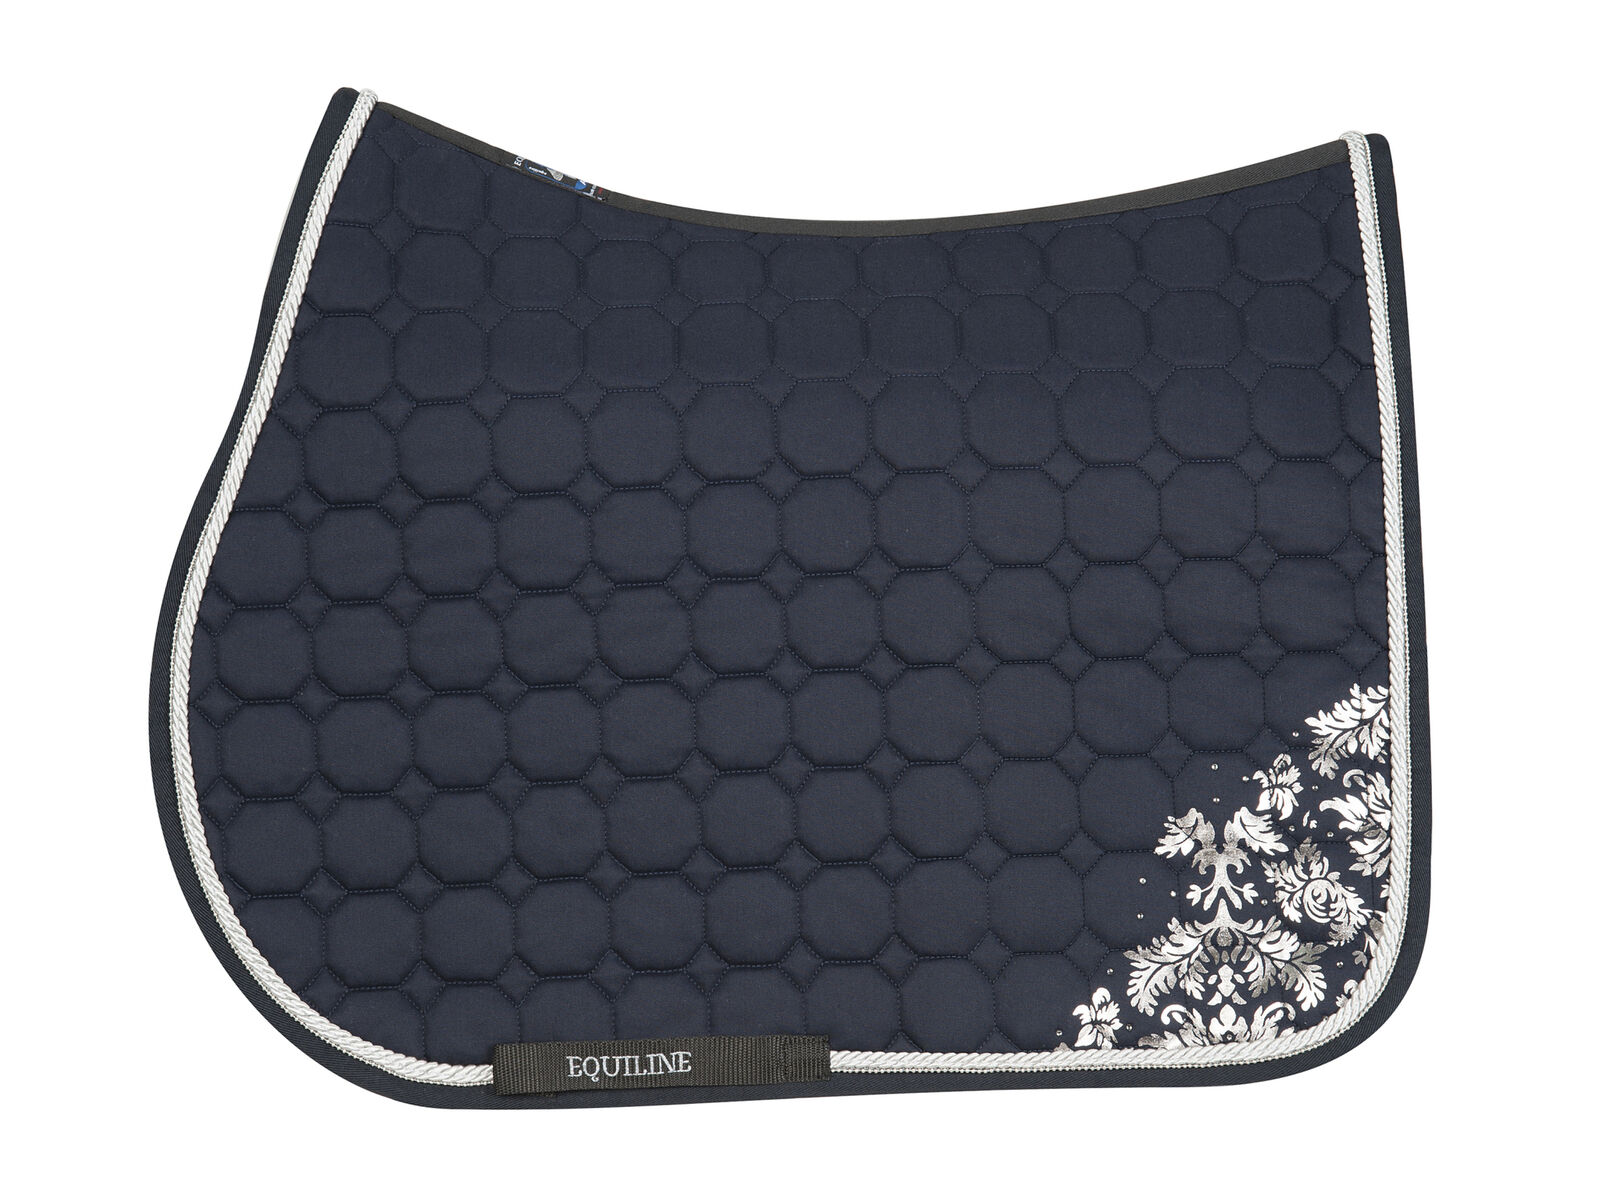 Equiline VICTORIA HORSE HORSE HORSE OCTAGONE SADDLE CLOTH azul SS 2019 a72d46